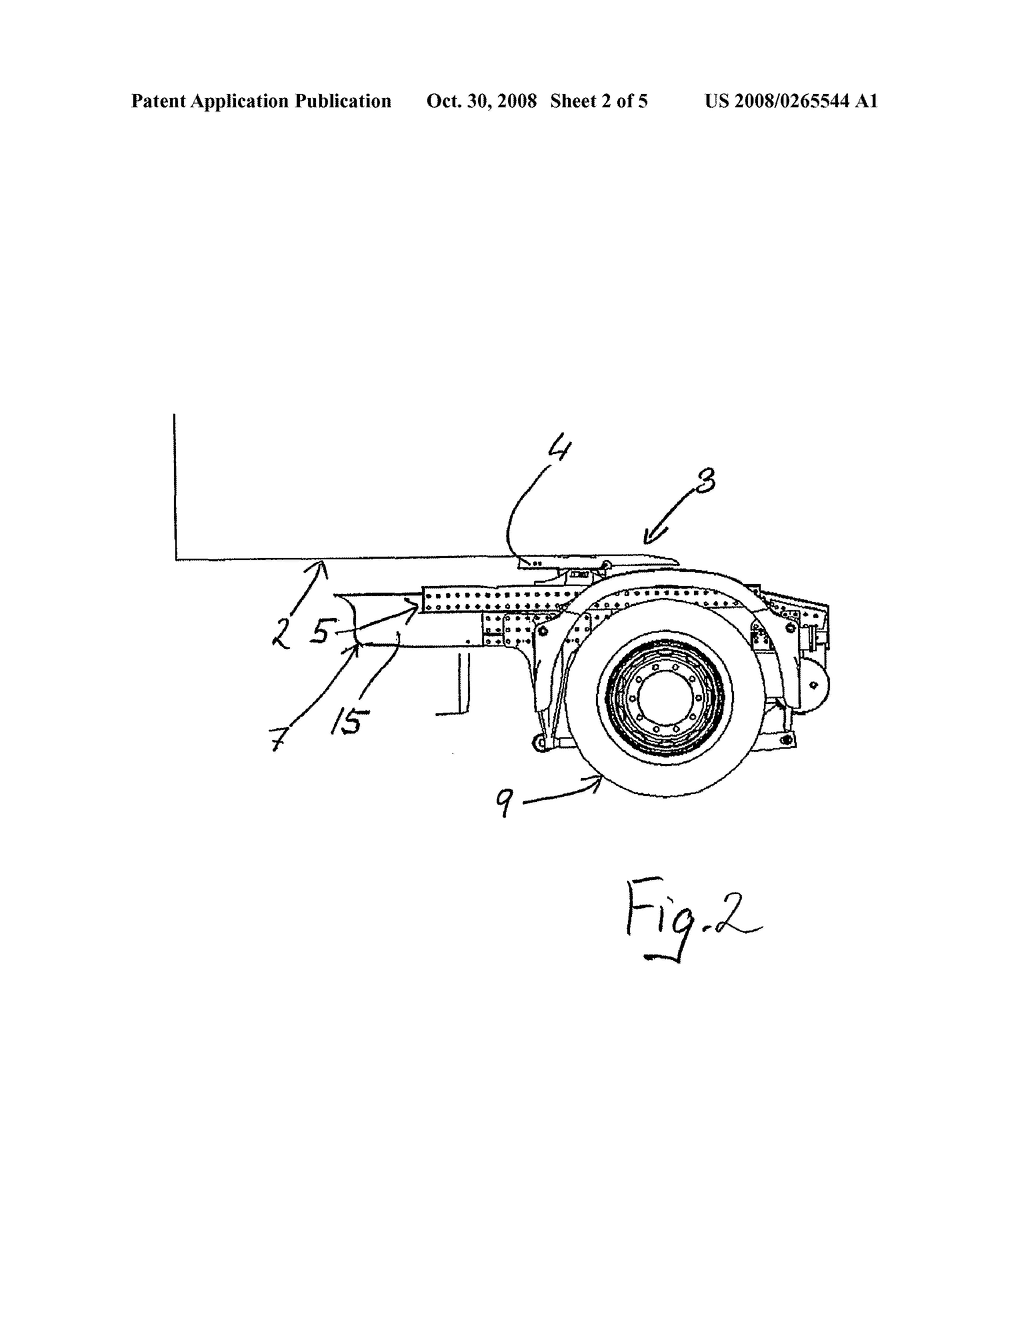 hight resolution of fifth wheel assembly for coupling a trailer to a truck tractor and a method for operating said assembly diagram schematic and image 03